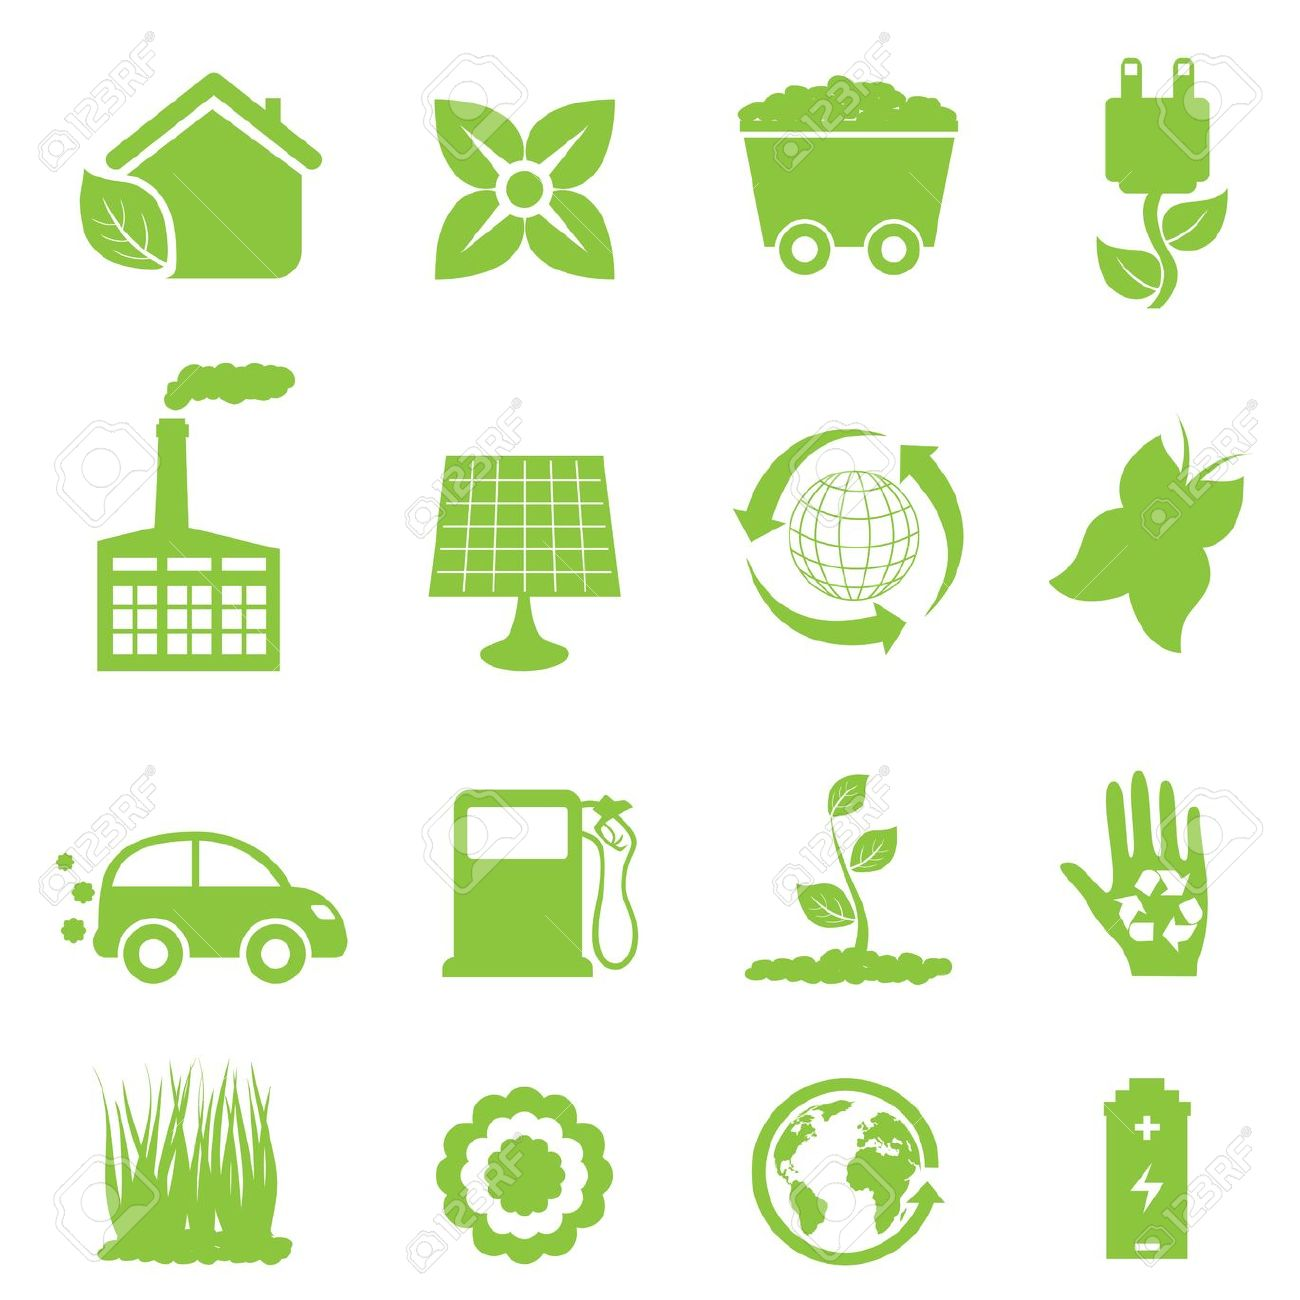 Recycling And Clean Energy Icon Set Royalty Free Cliparts, Vectors.